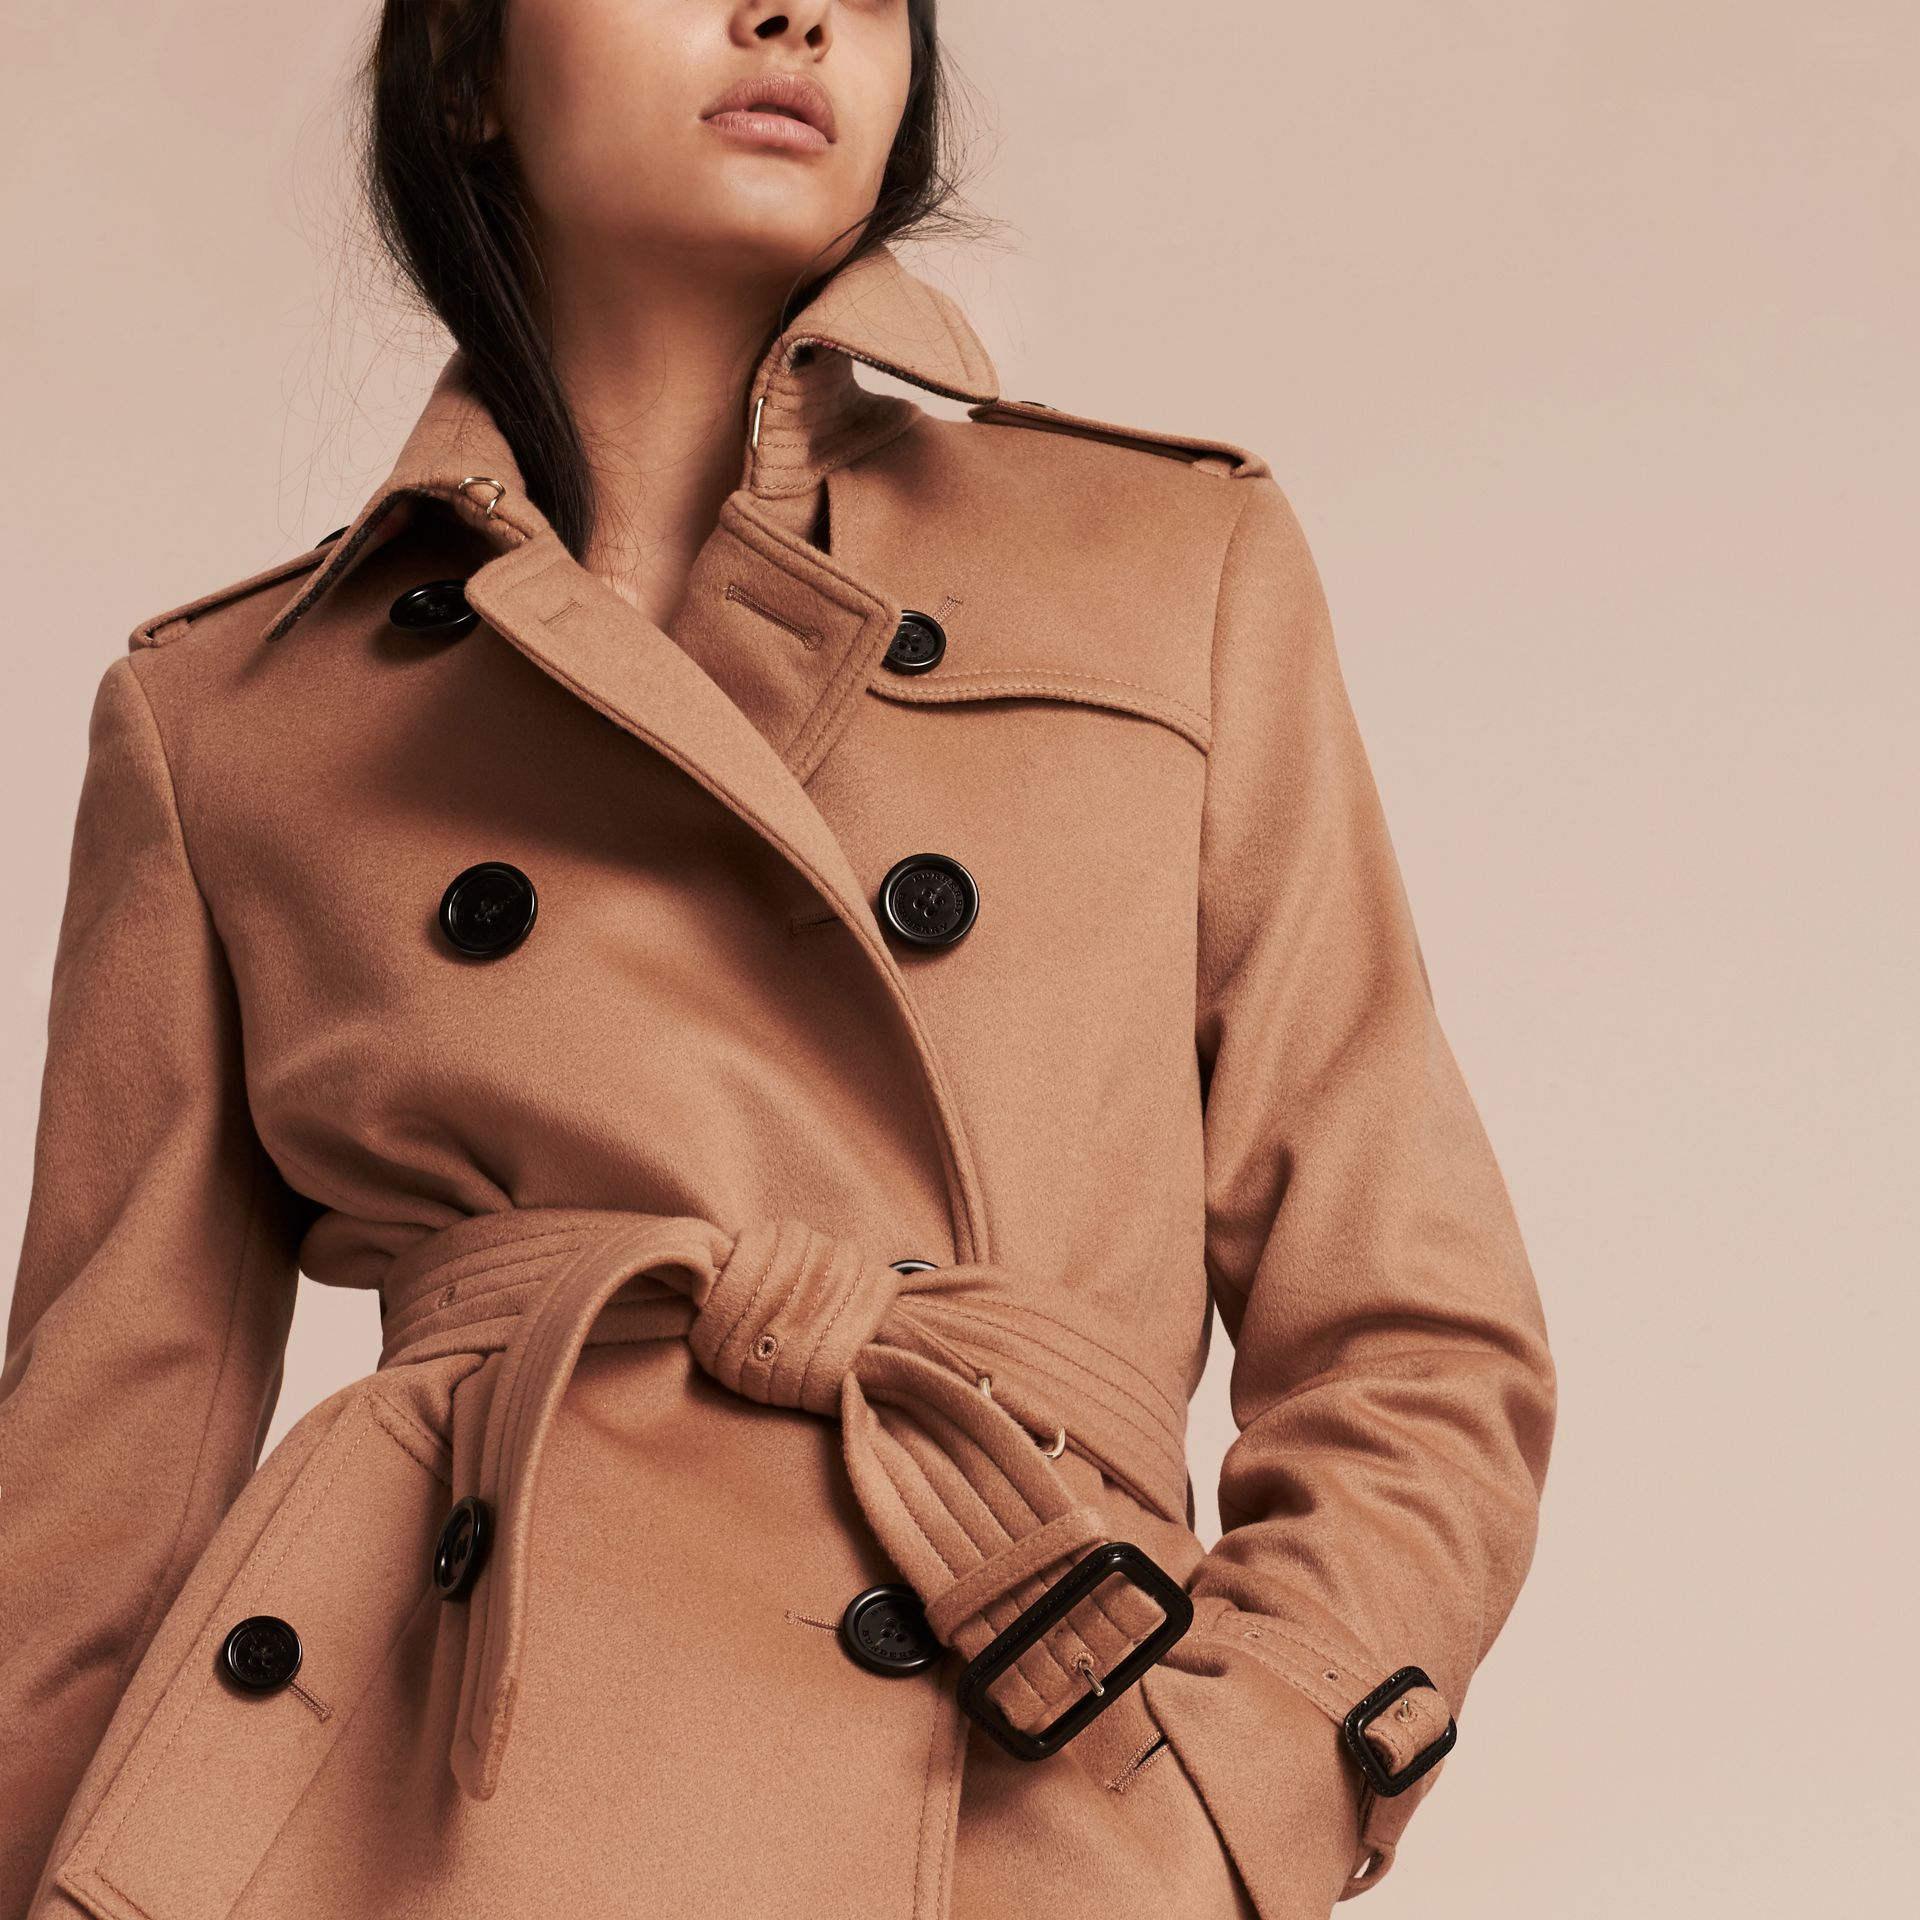 Wool Cashmere Trench Coat in Camel - Women | Burberry Canada - gallery image 6